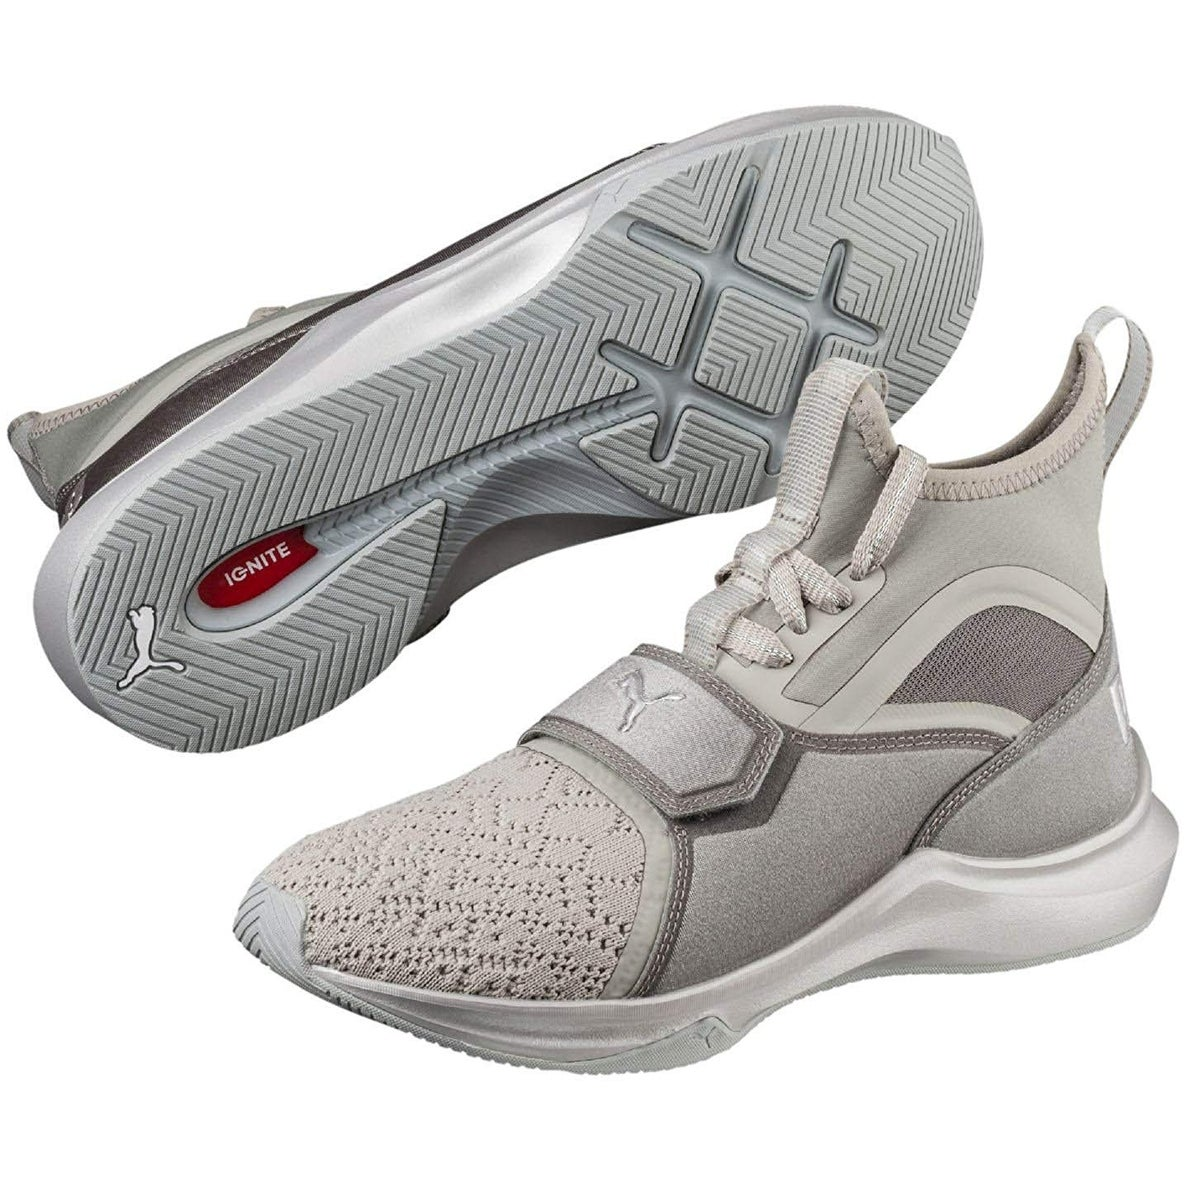 fa439a9b6ff7 Shop PUMA Women s Phenom Ep High-Top Fabric Running Shoe - 10.5 - Free  Shipping On Orders Over  45 - Overstock.com - 27032557